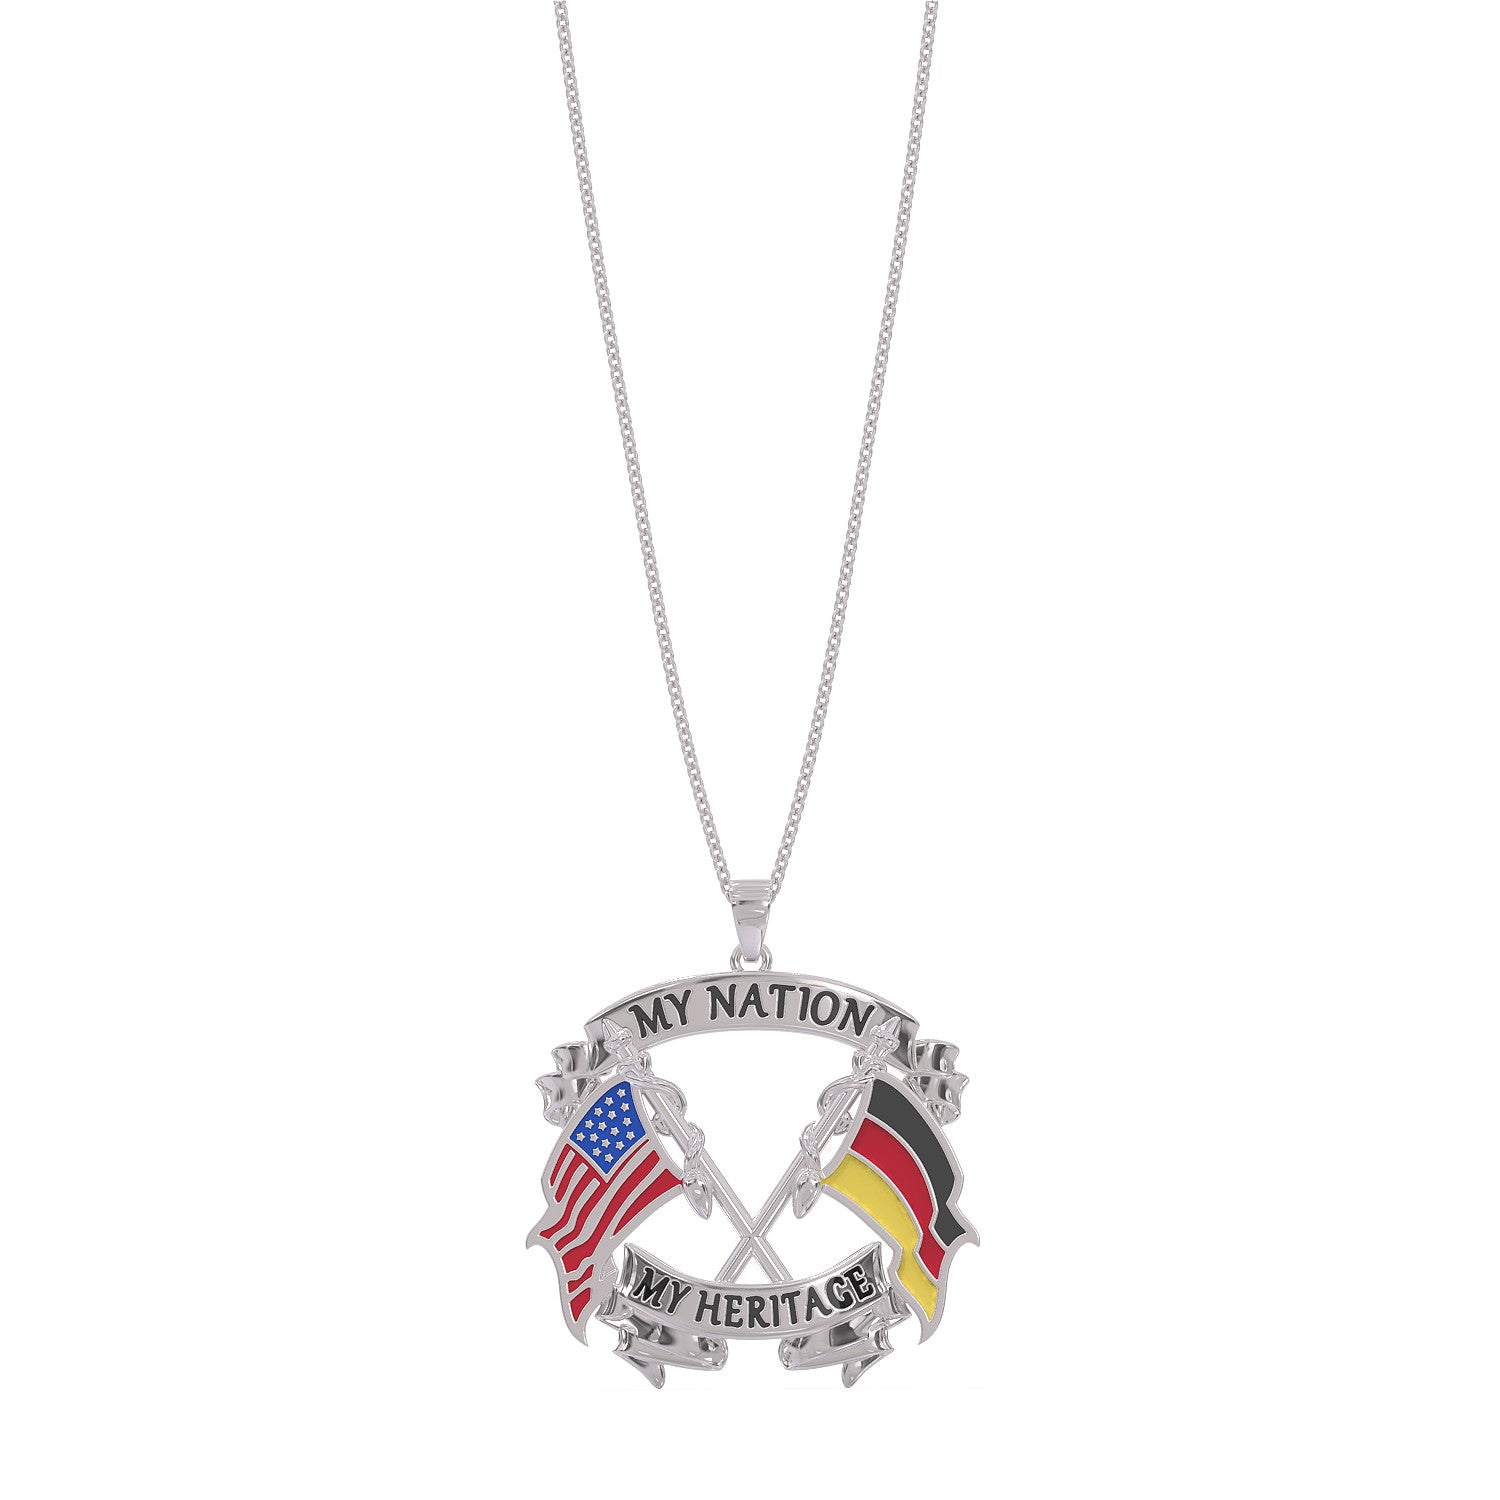 My Nation My Heritage German Necklace